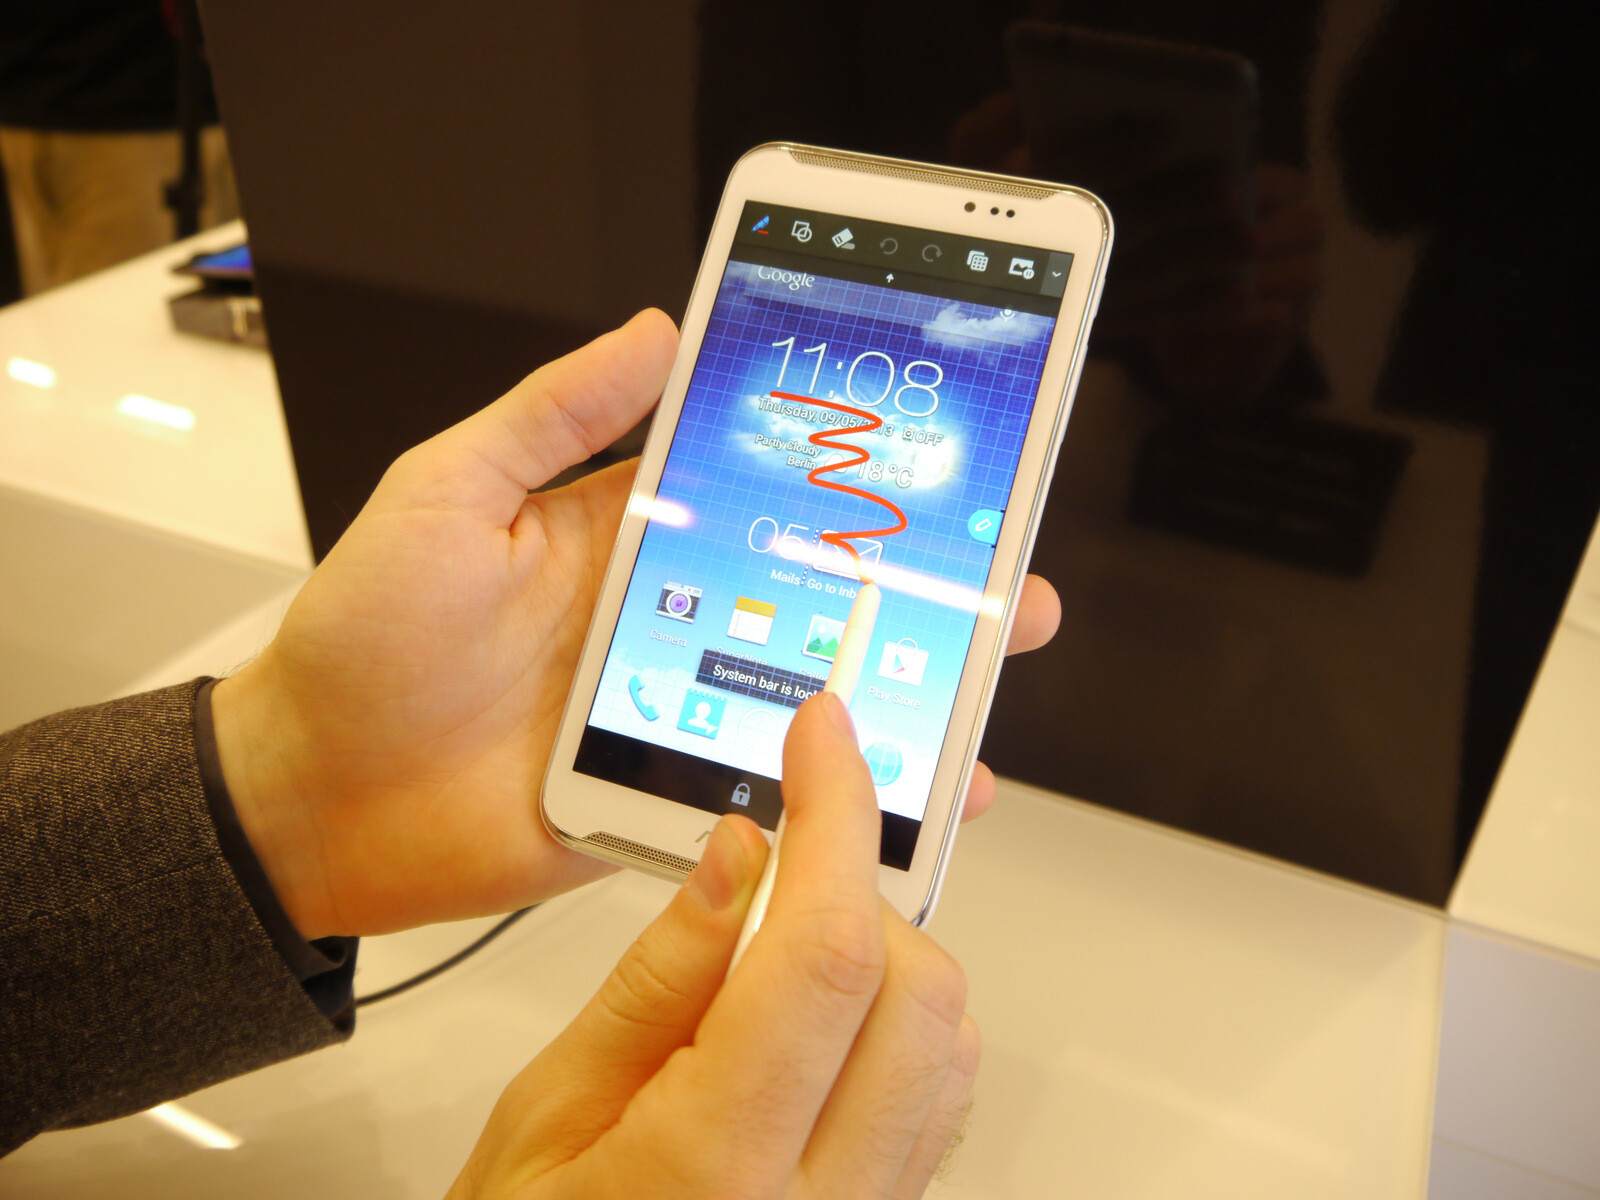 ASUS Fonepad: Pictures and a First Hands-on